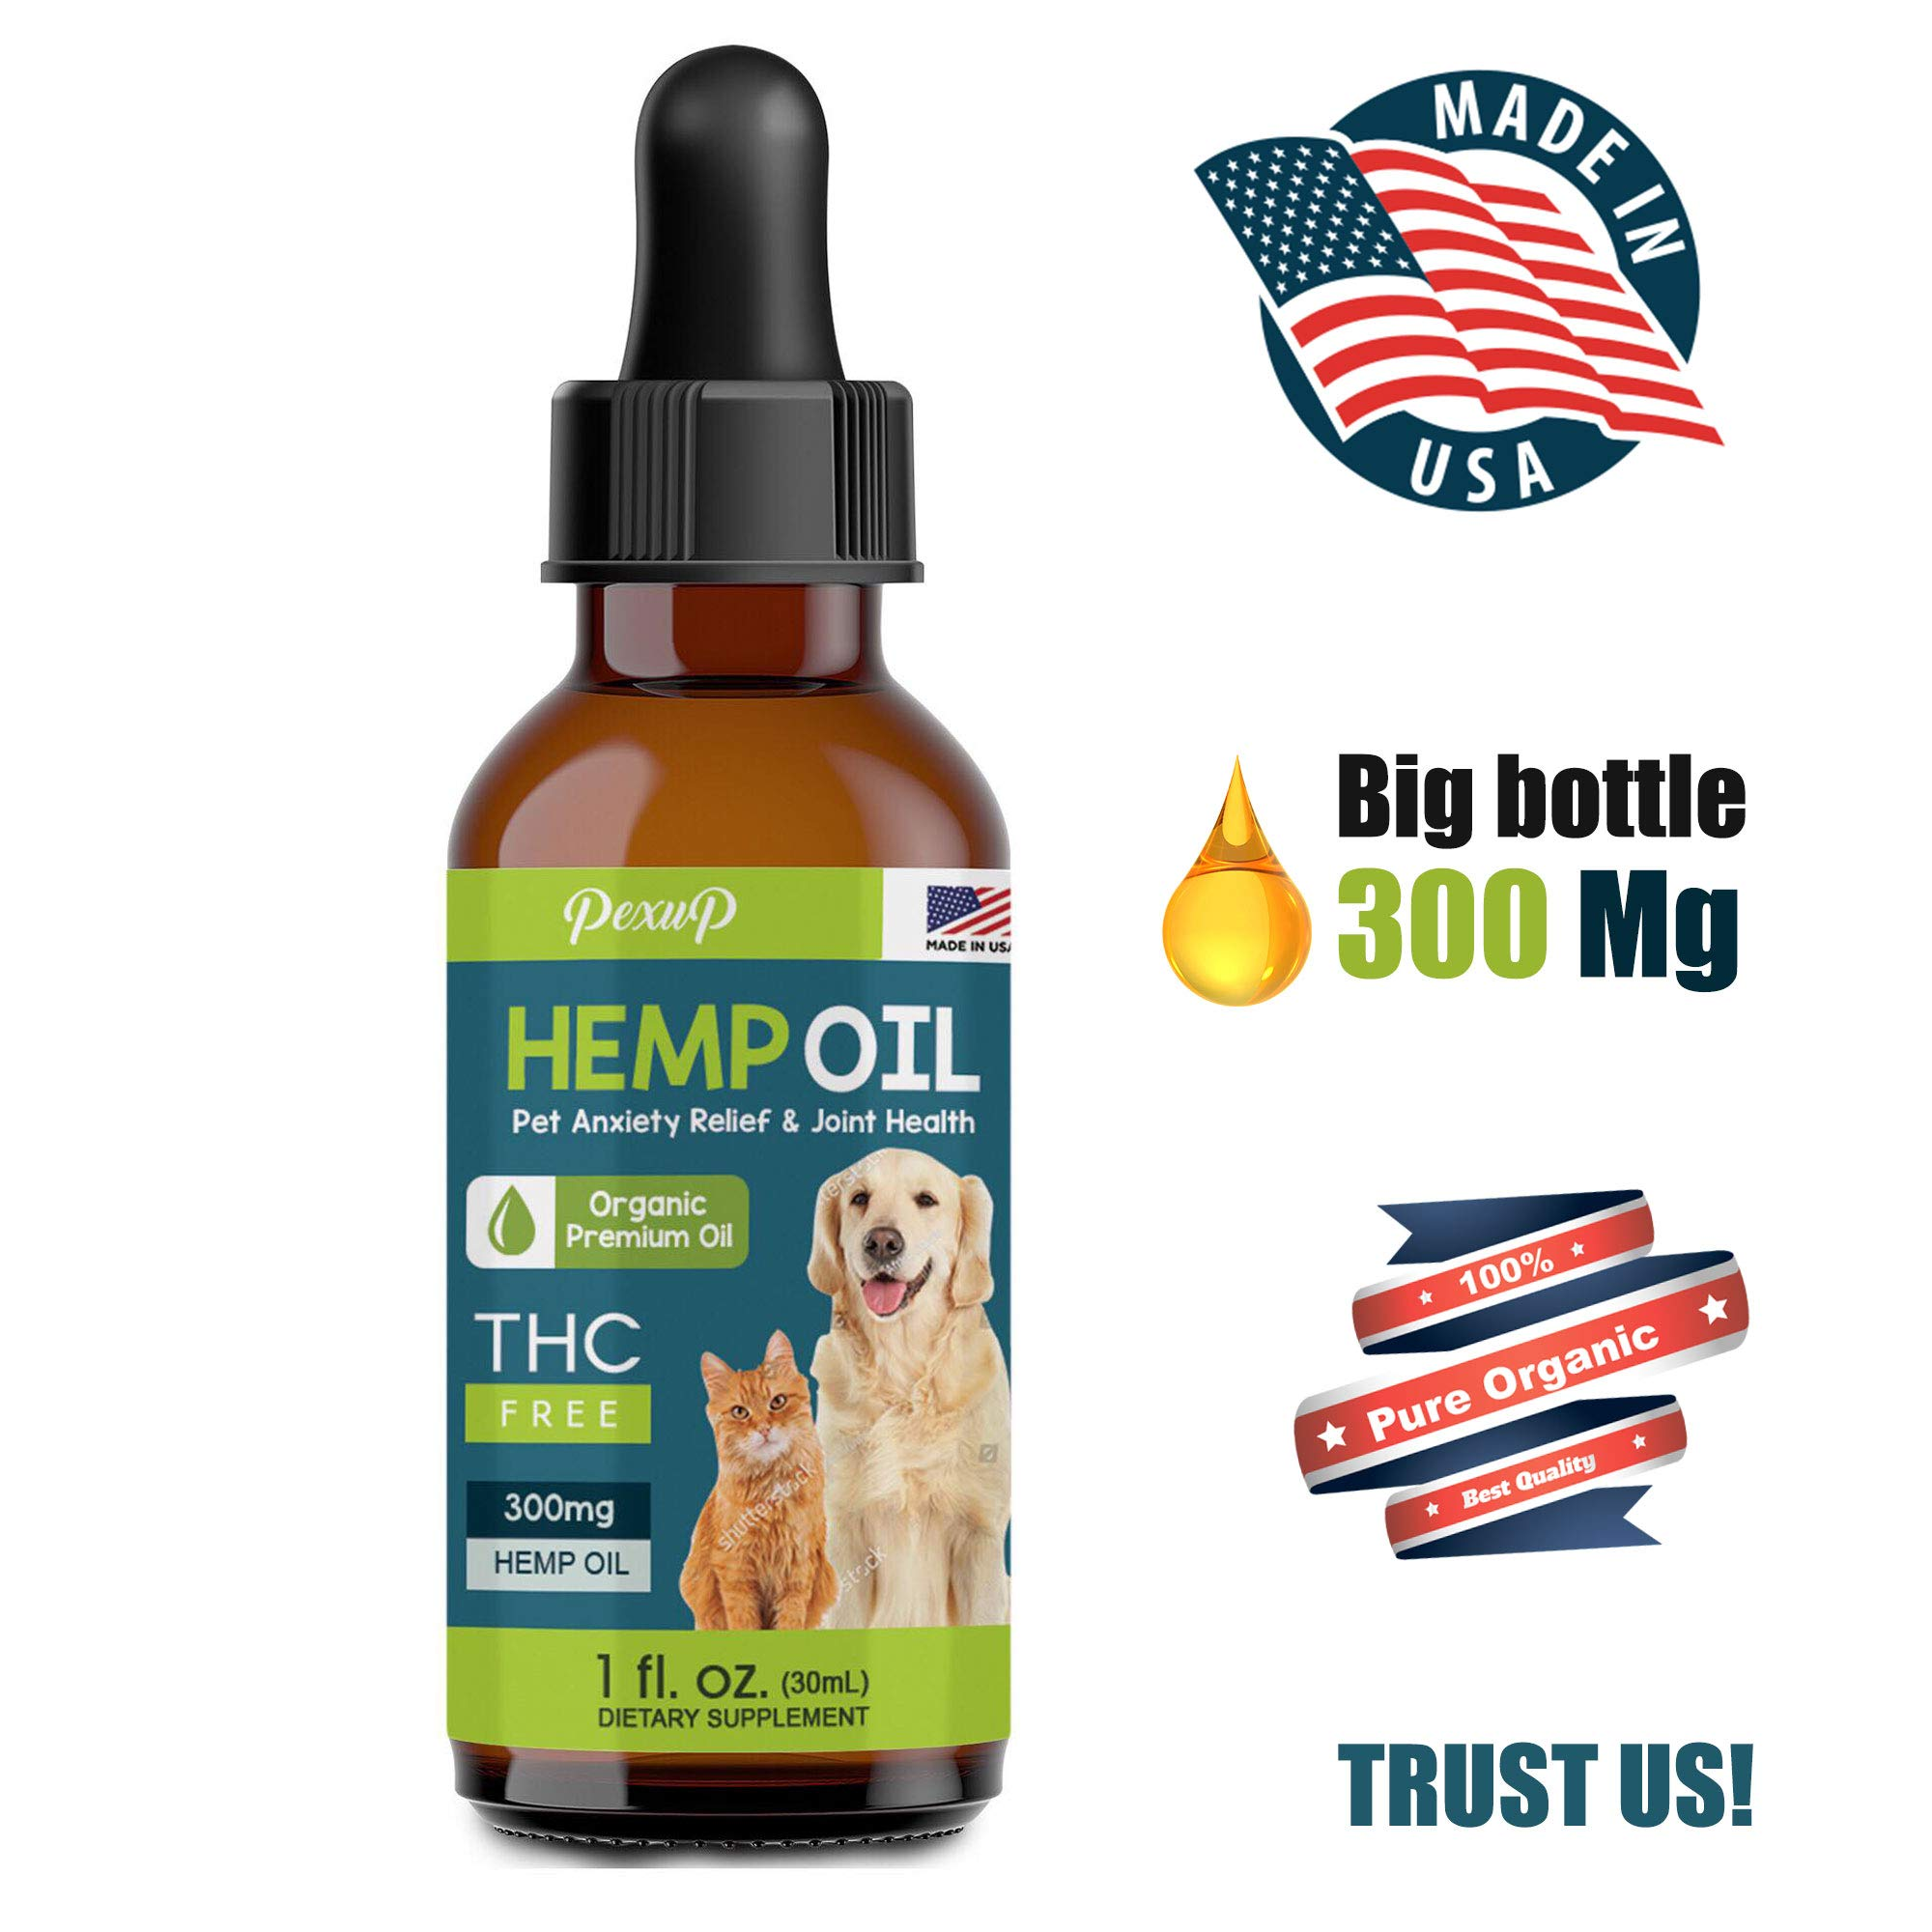 Pexup Hemp Oil for Dogs and Cats - 100% Organic Treat and Food Supplement Grown and Extracted in USA Veterinarian Formulated (300mg) - Non-GMO